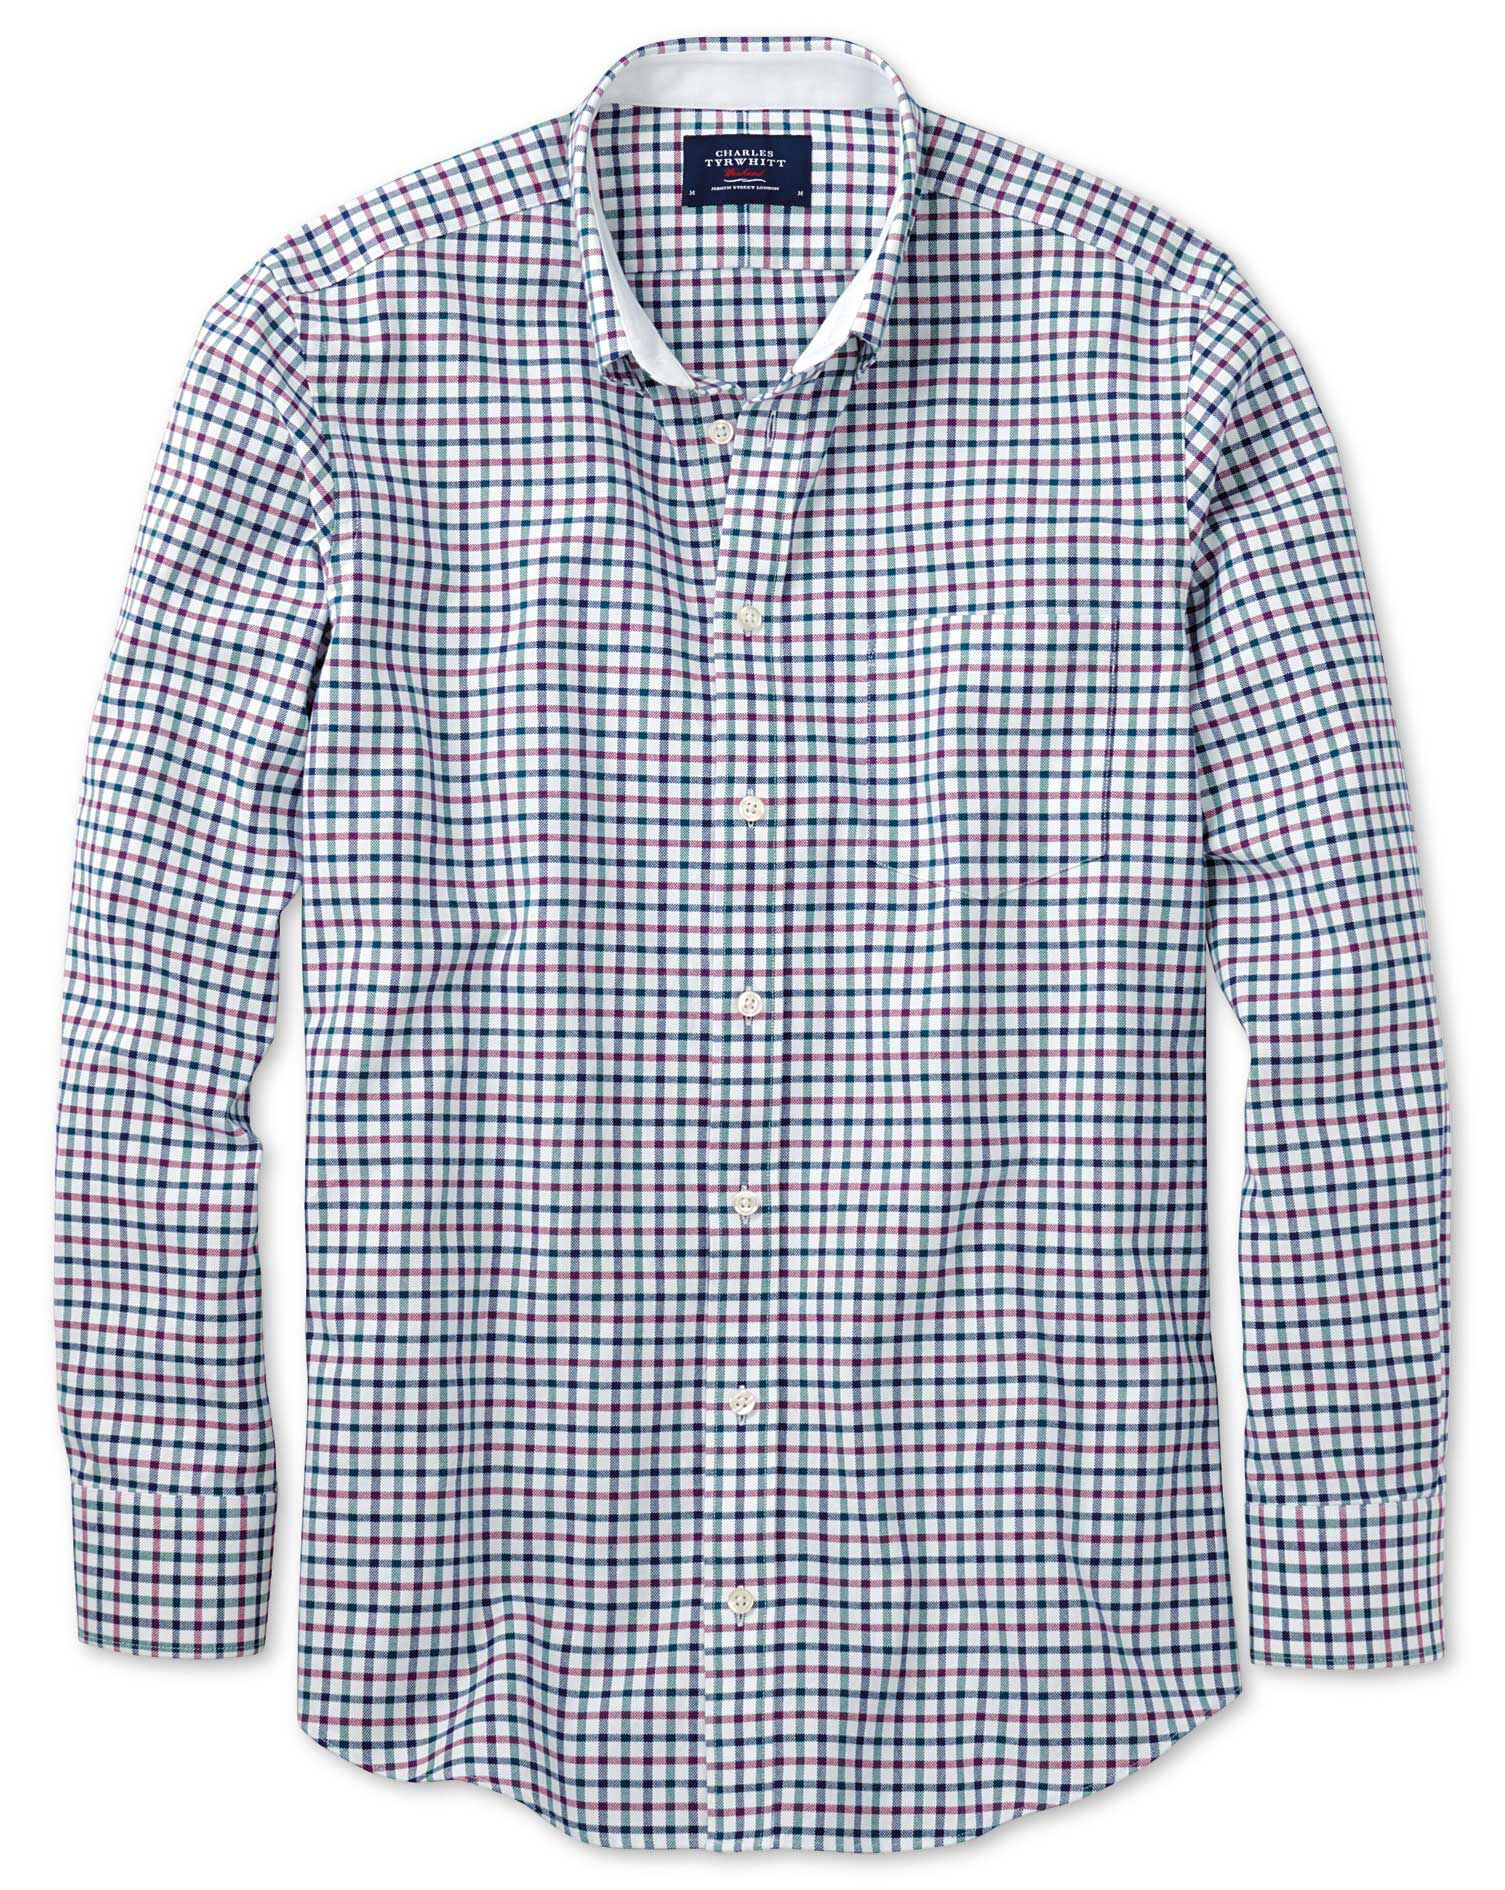 Classic Fit Navy and Berry Check Washed Oxford Cotton Shirt Single Cuff Size Large by Charles Tyrwhi